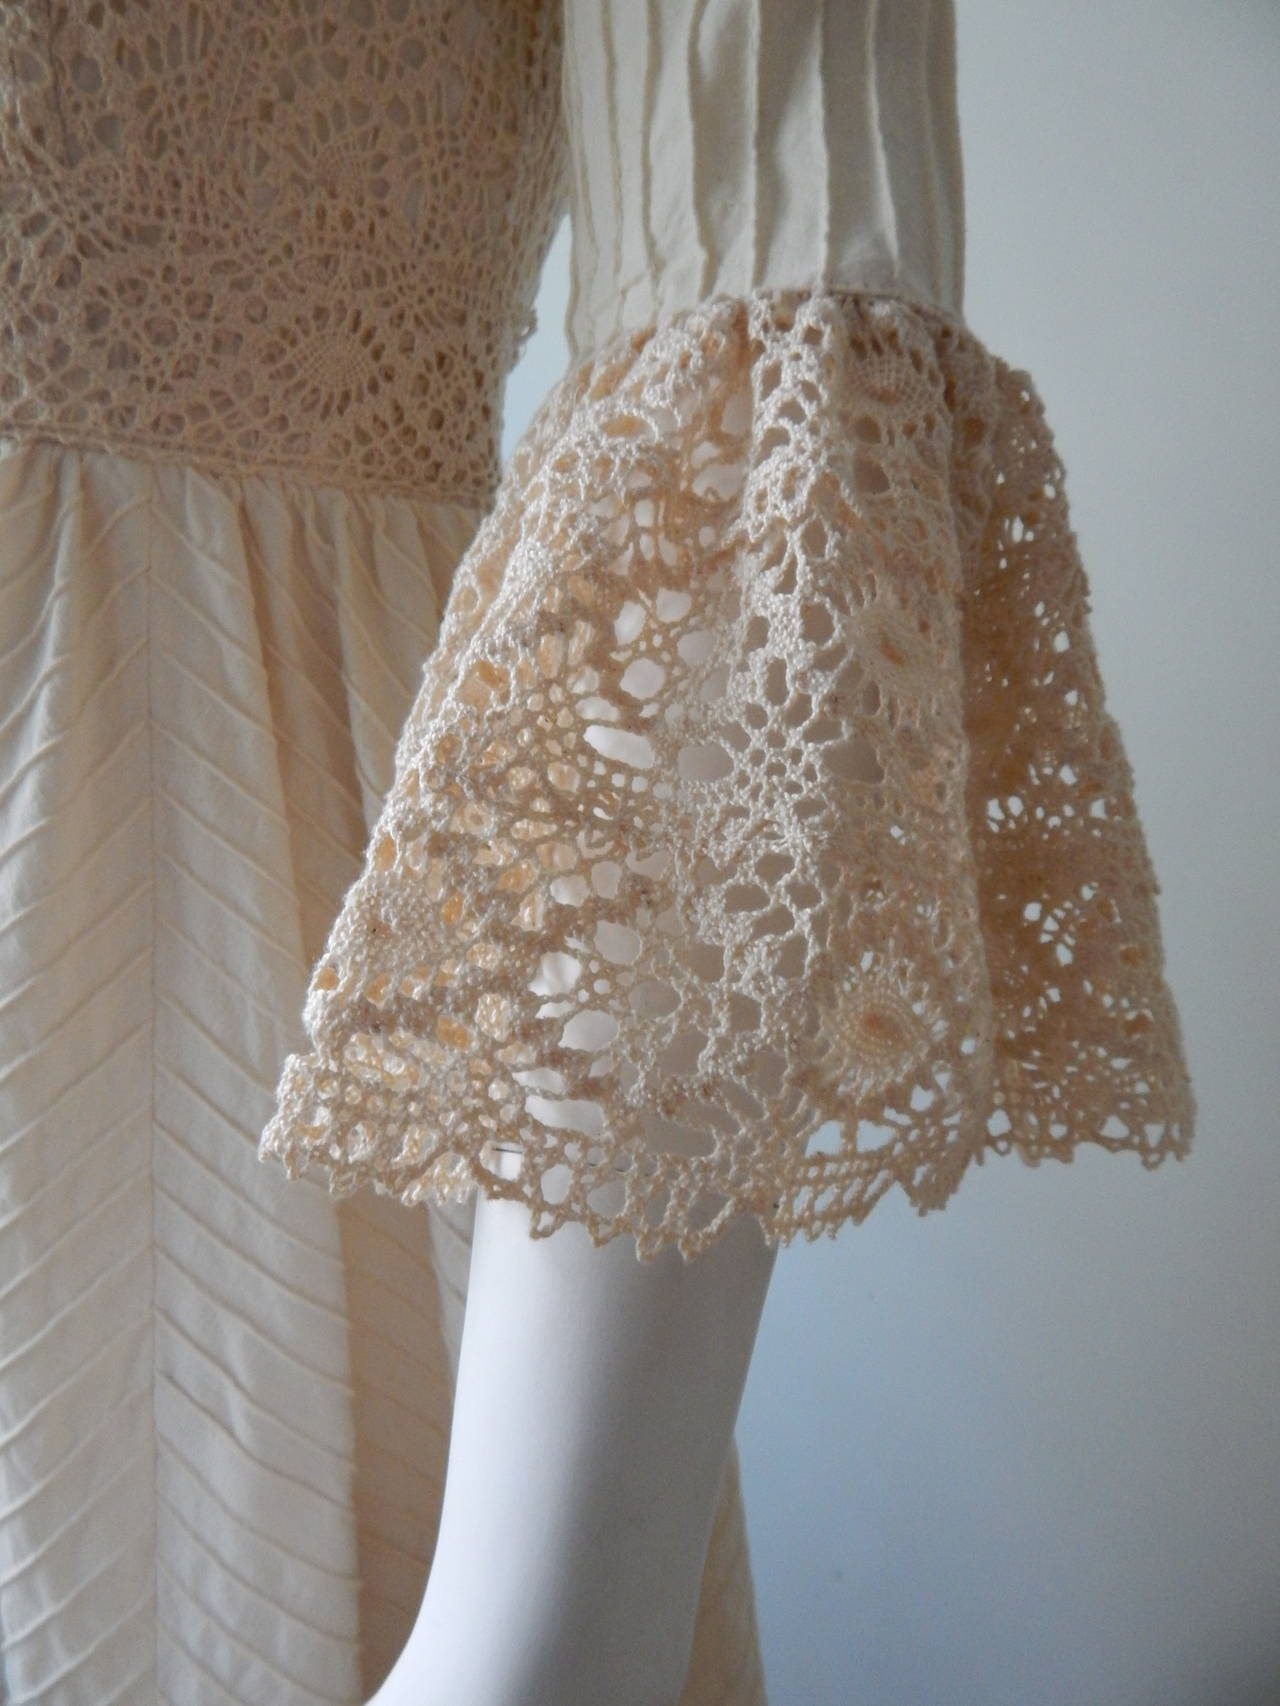 1970s mexican wedding dress for sale at 1stdibs for 1970s wedding dresses for sale